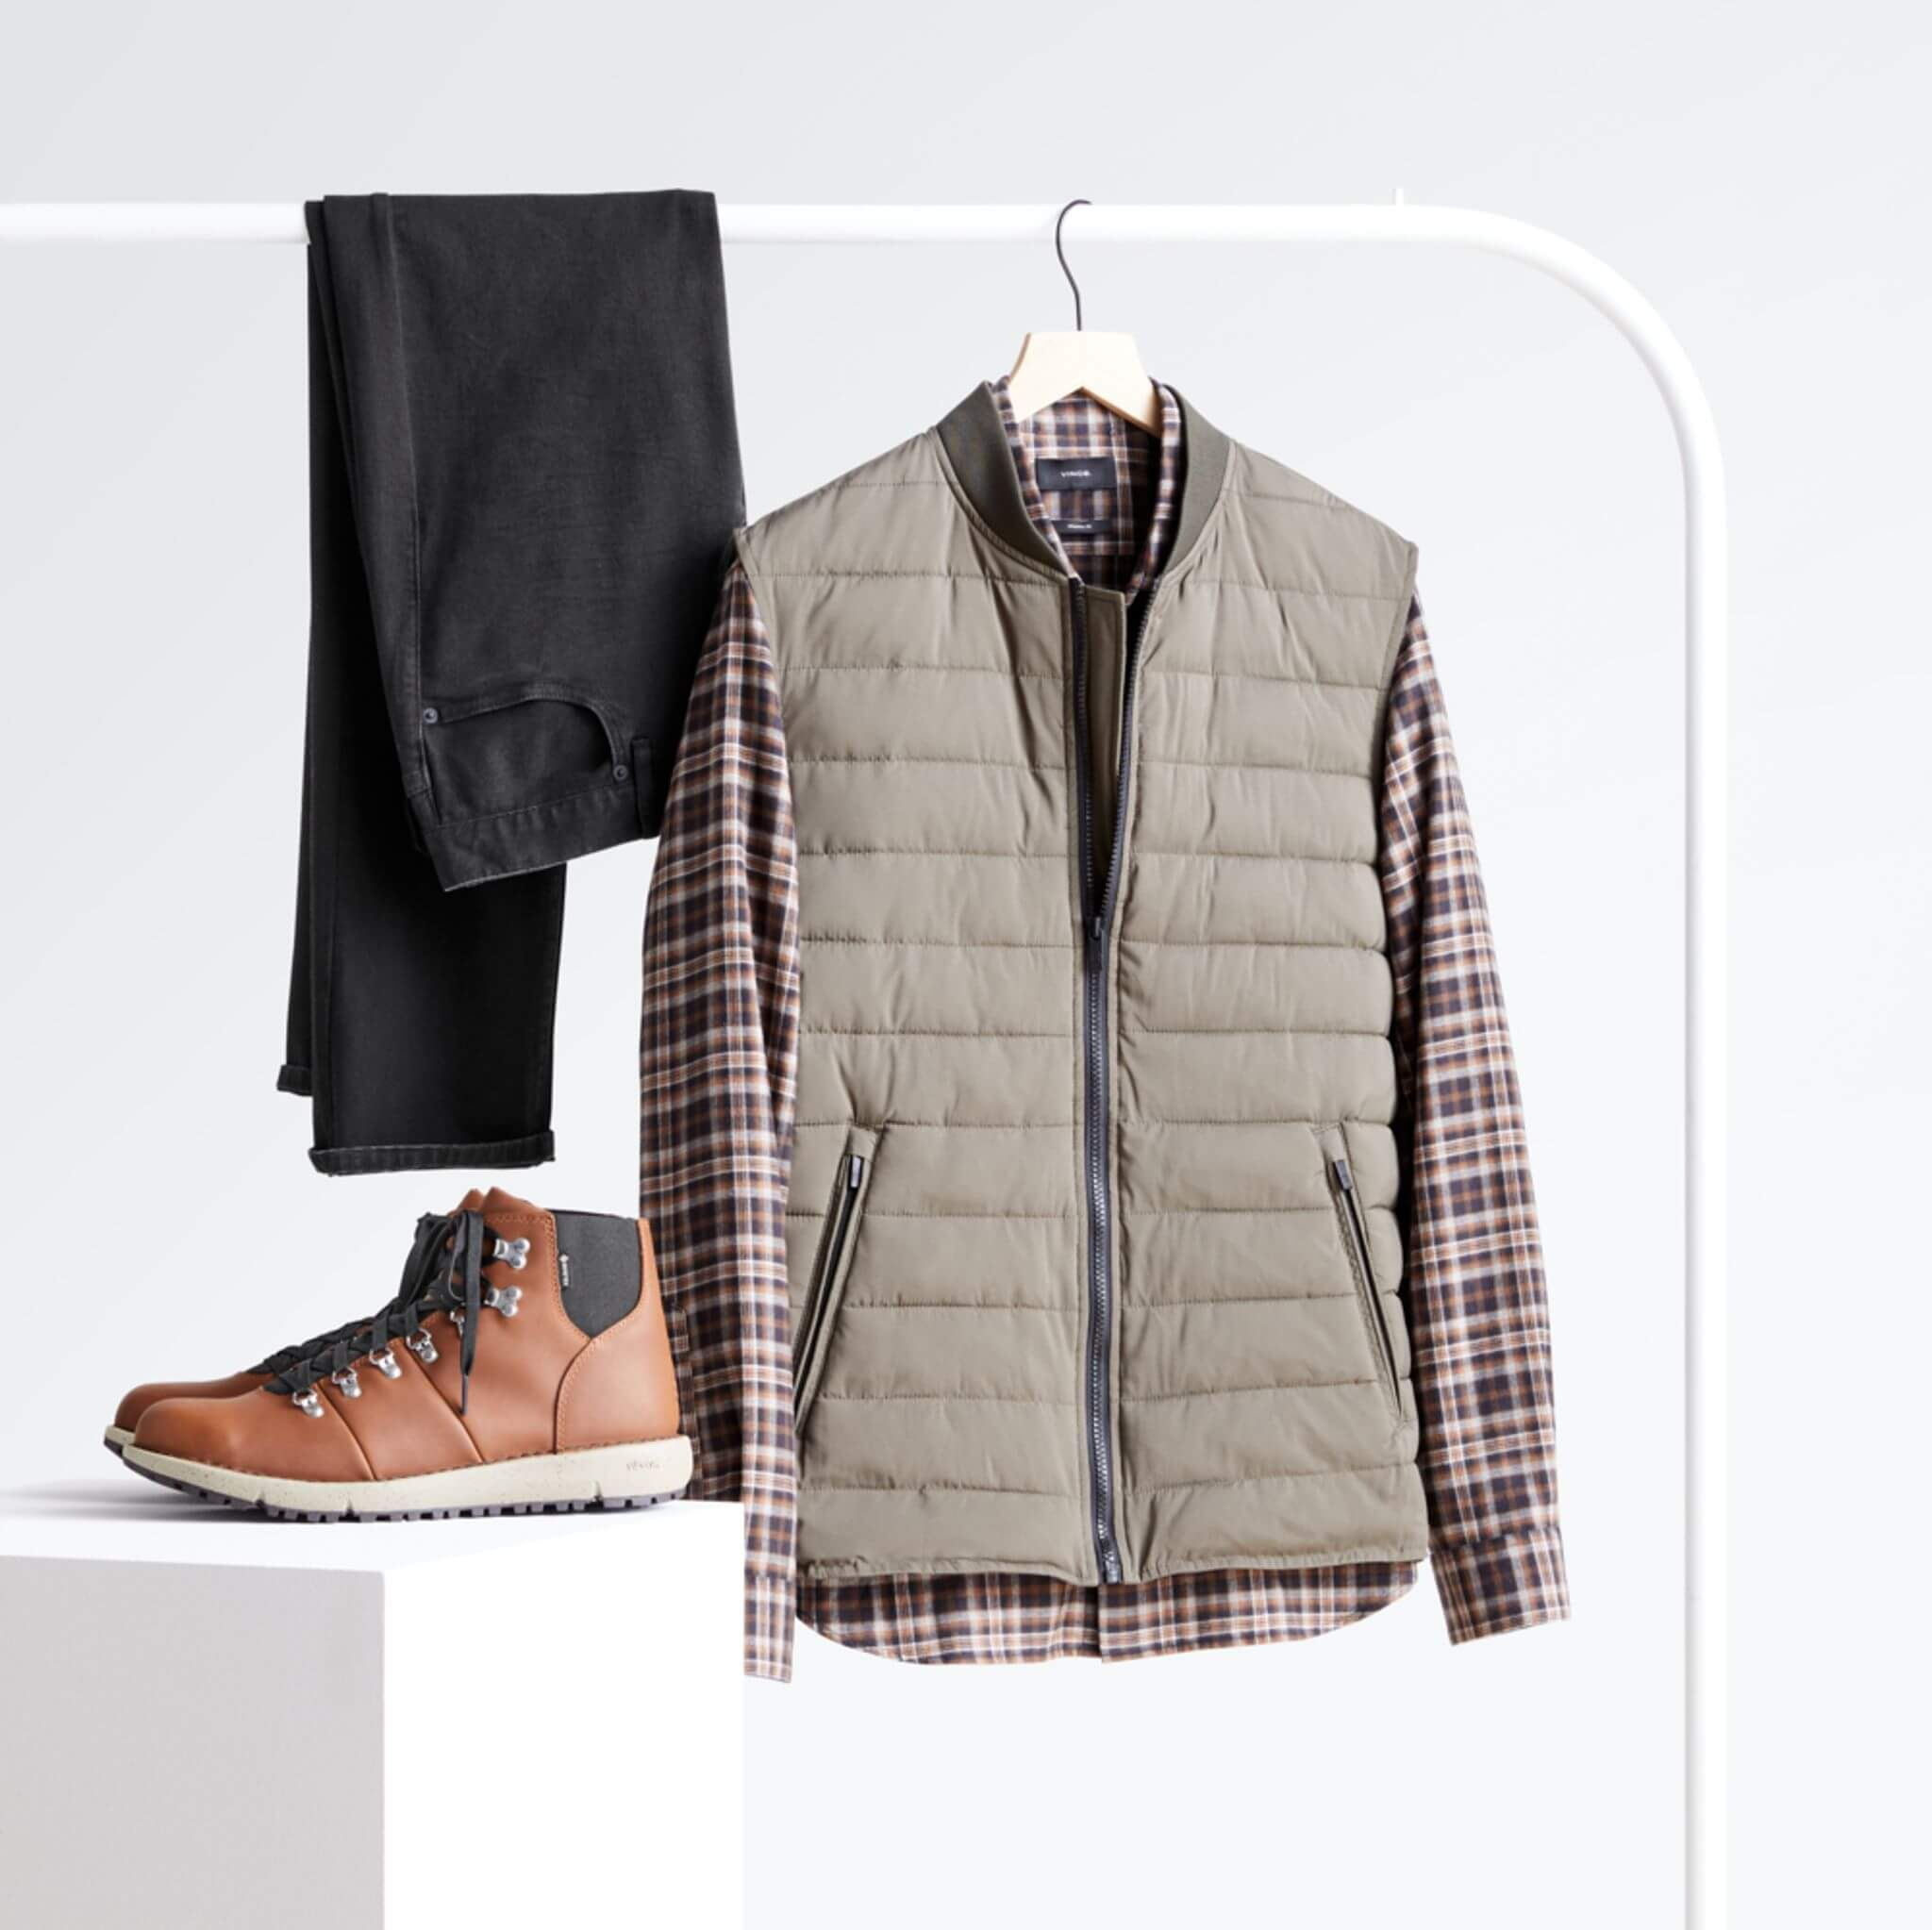 Stitch Fix Men's black slim-fit jeans, long-sleeved woven plaid button-down shirt and bomber vest hanging on a white rack with brown leather boots on a white podium.